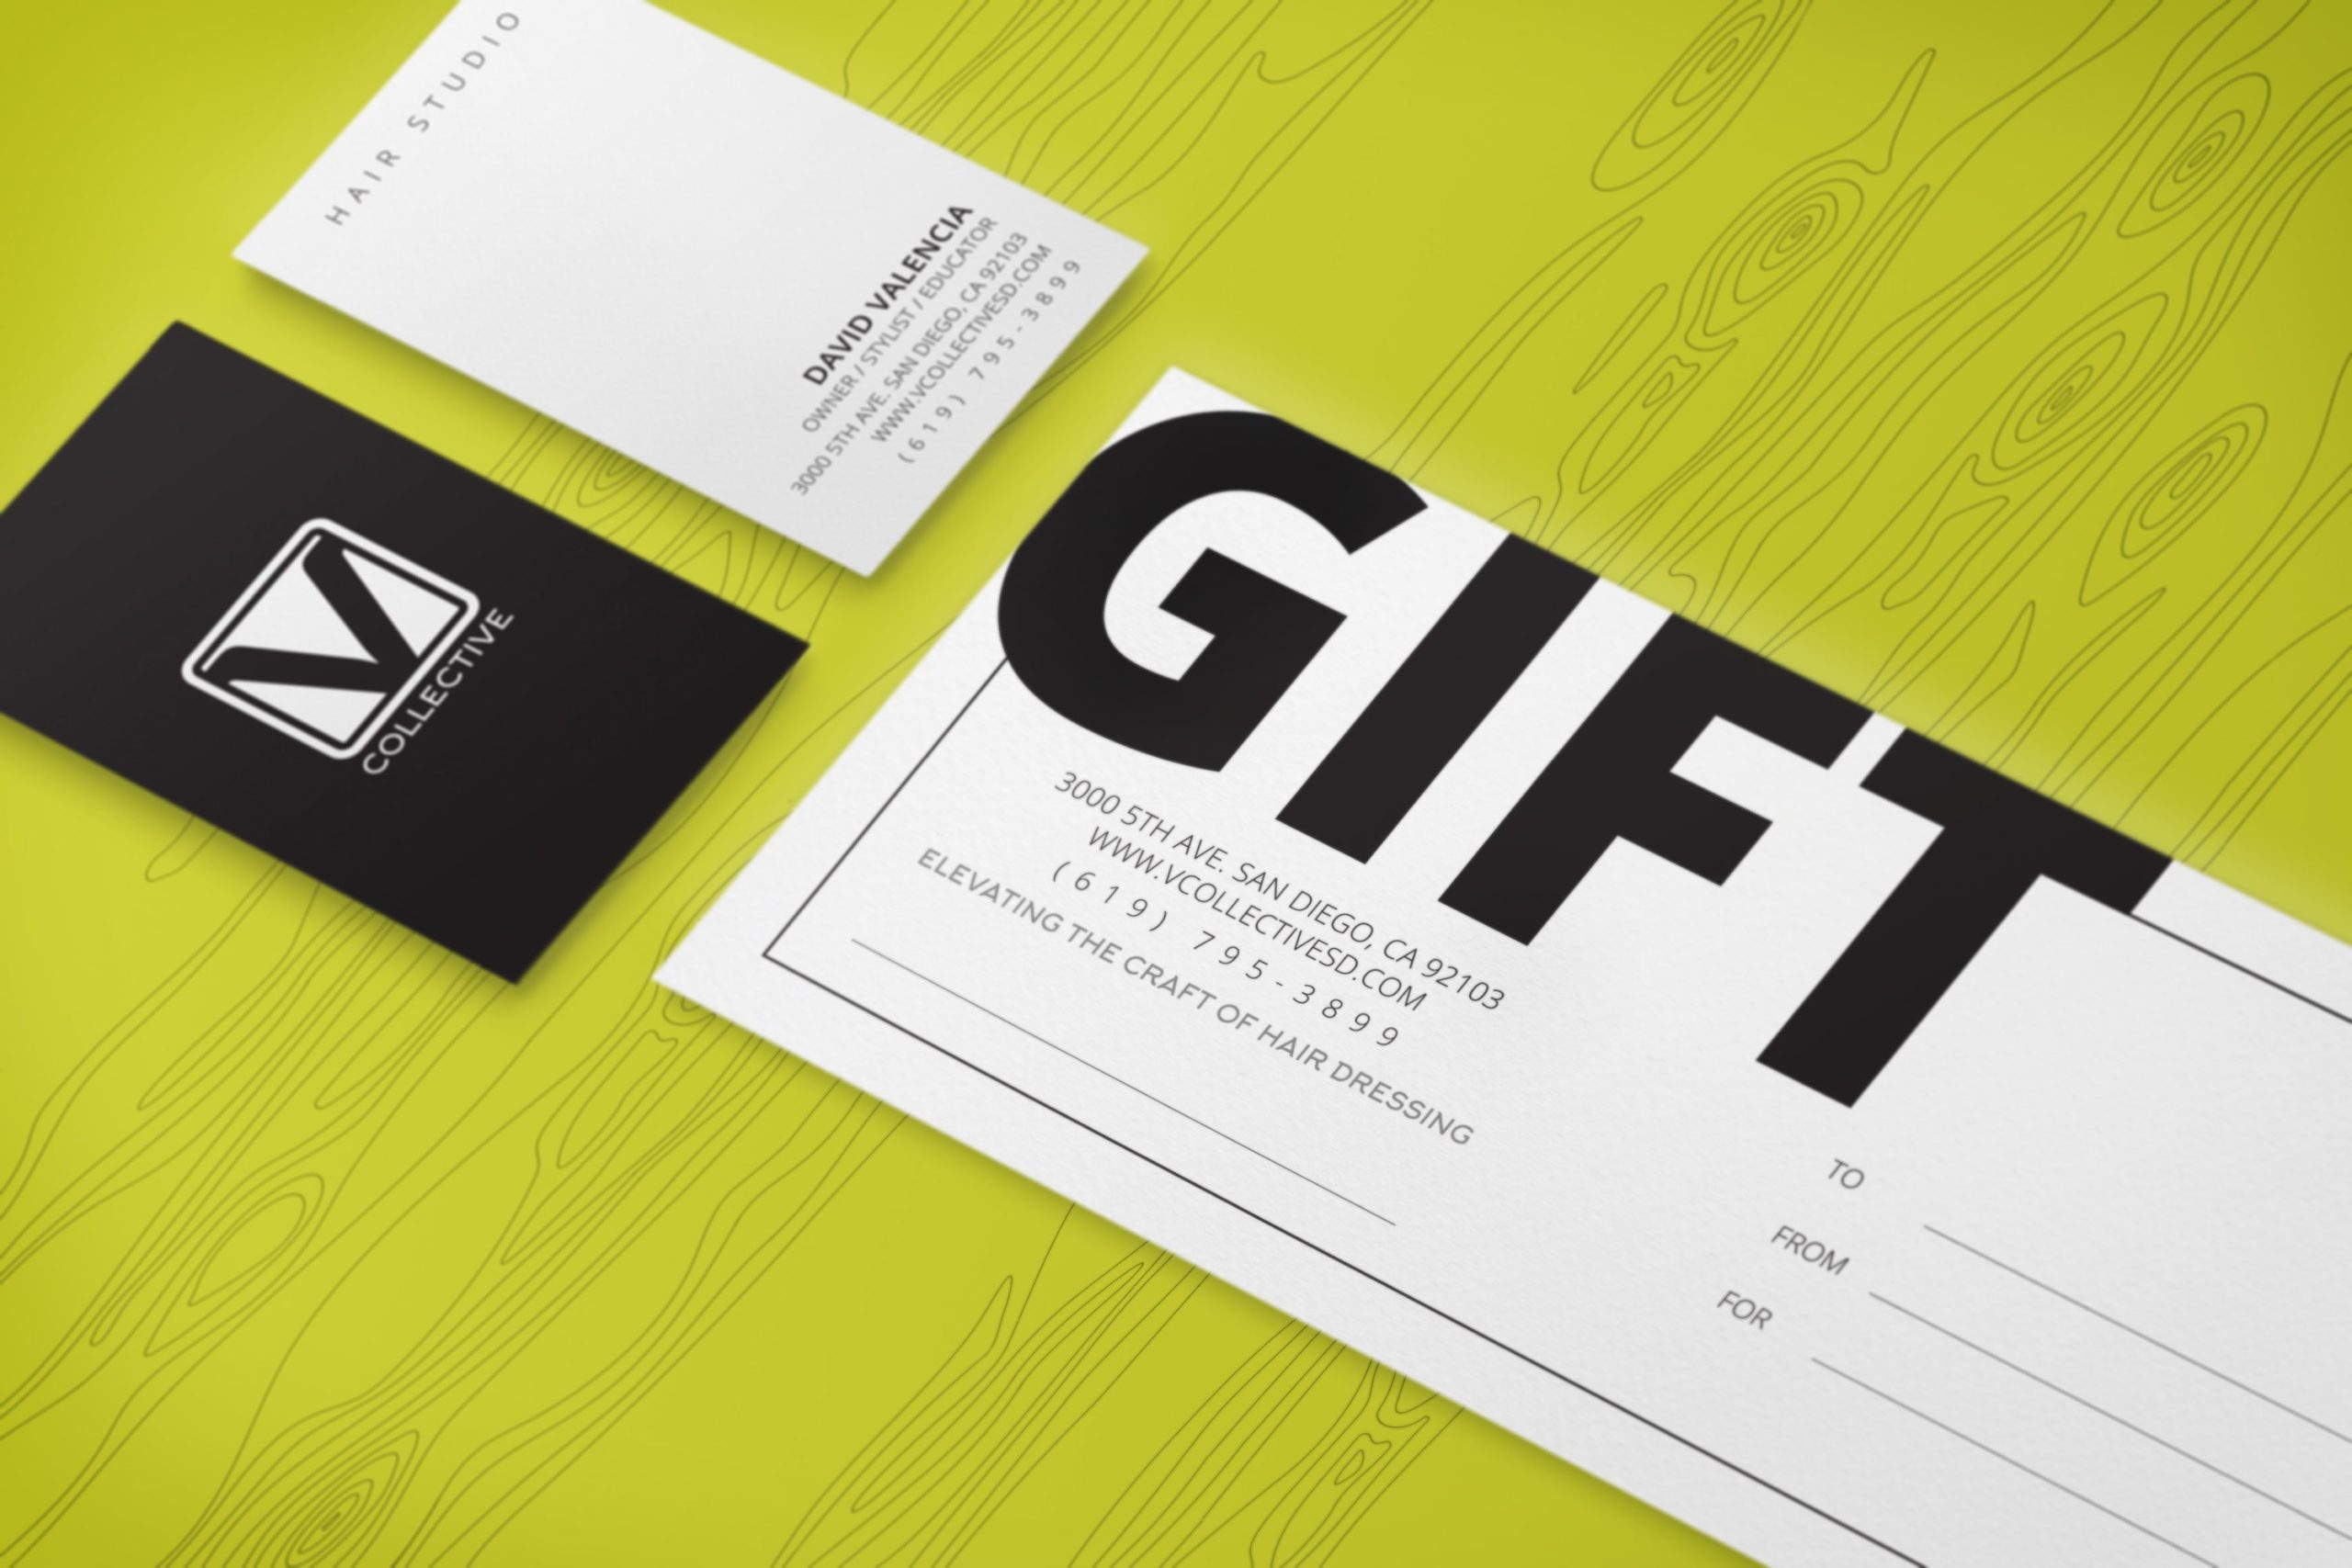 V Collective San Diego Print Design: Gift Cards and Business Card Design